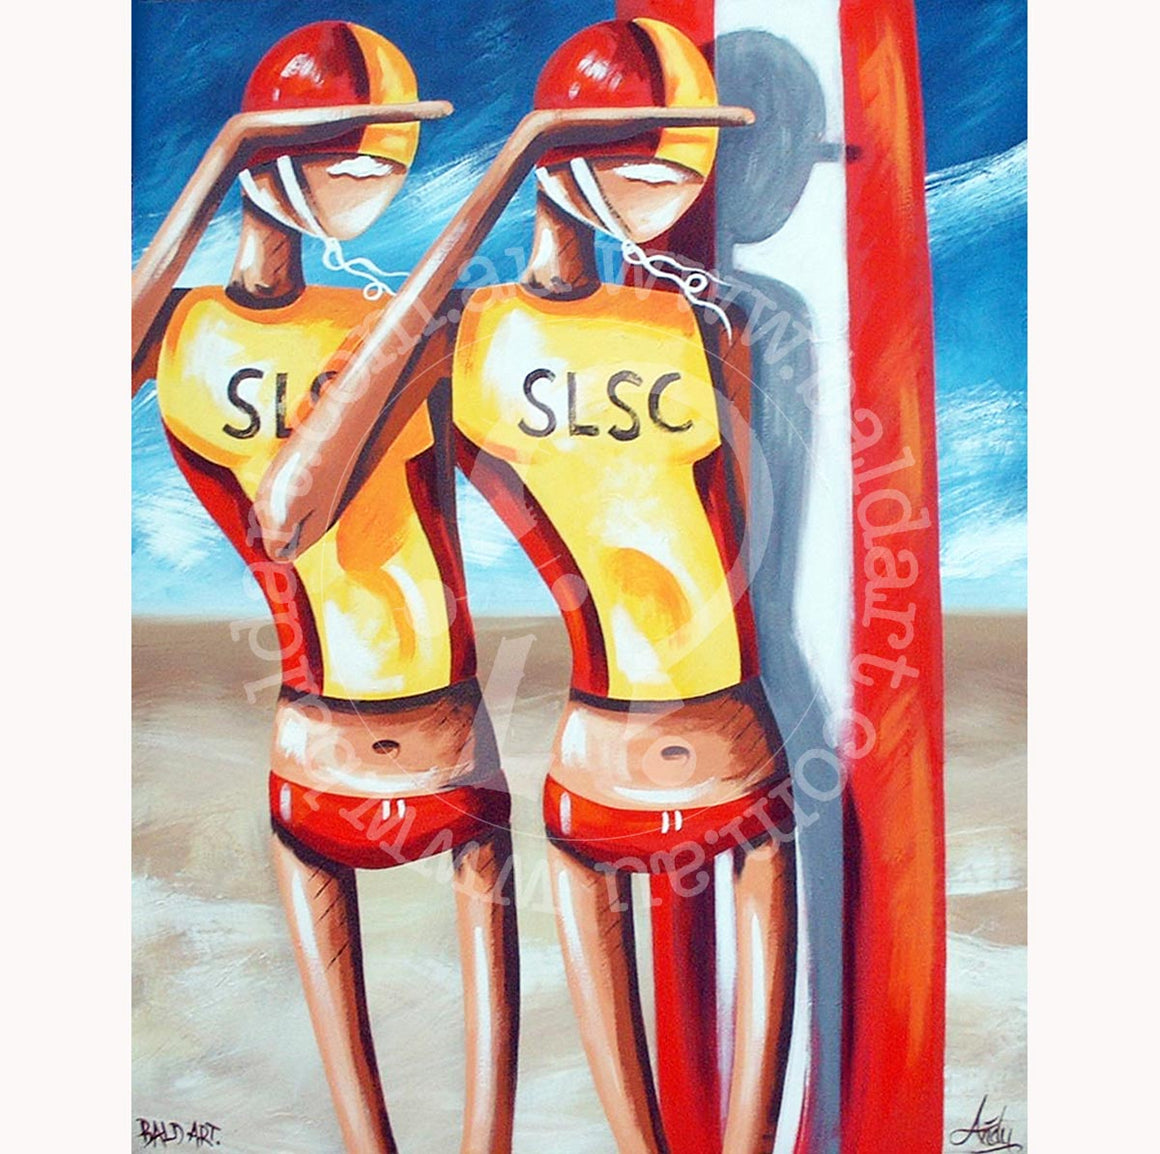 surf life saving canvas wall art by andy baker of bald art